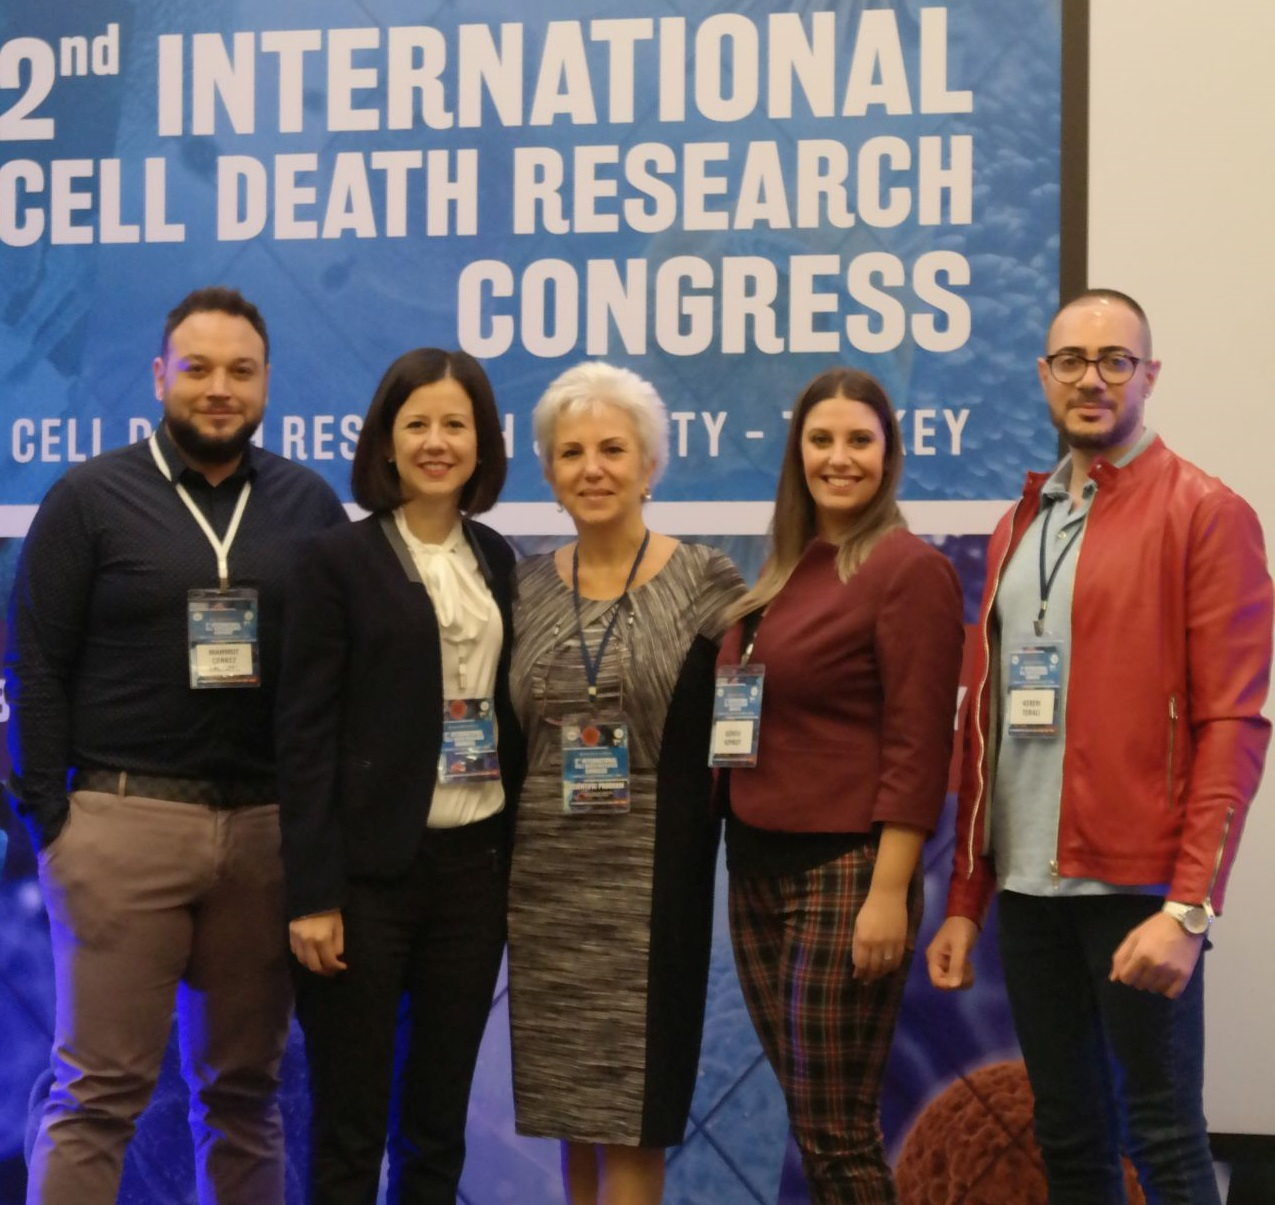 Award for the Second Best Oral Presentation goes to the Near East University at the 2nd International Cell Death Research Congress